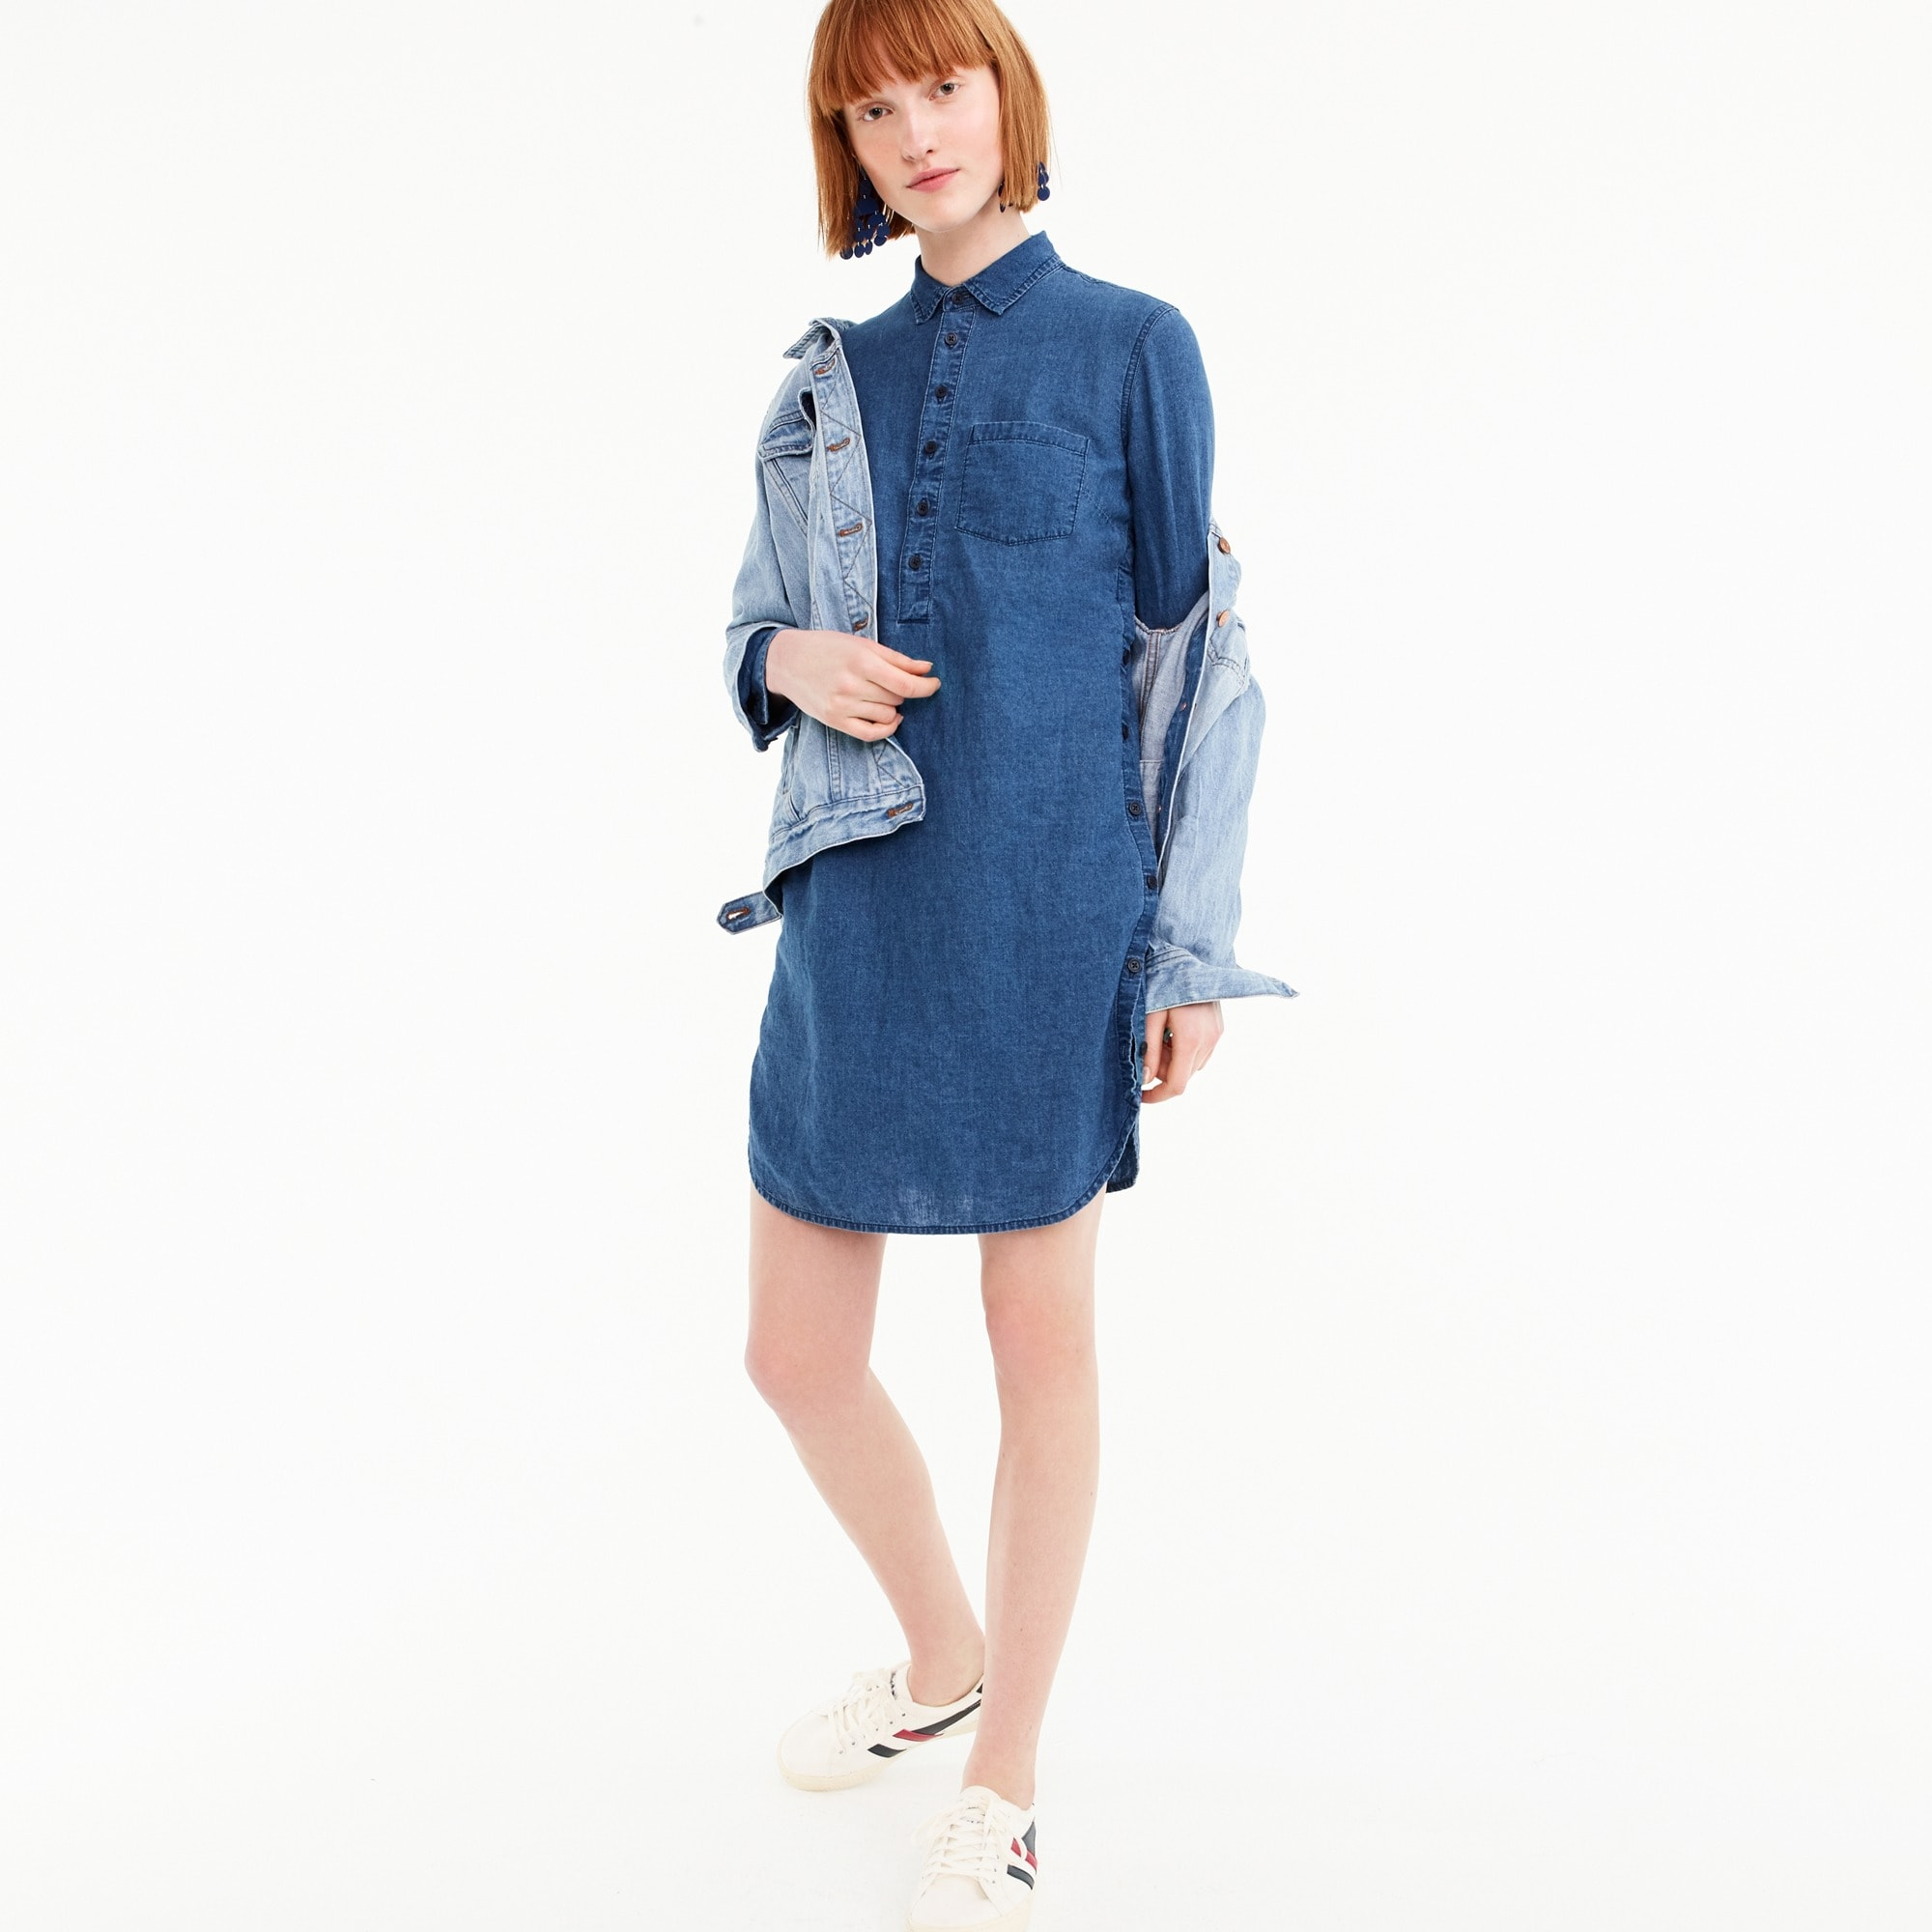 Side-button shirtdress in chambray women dresses c